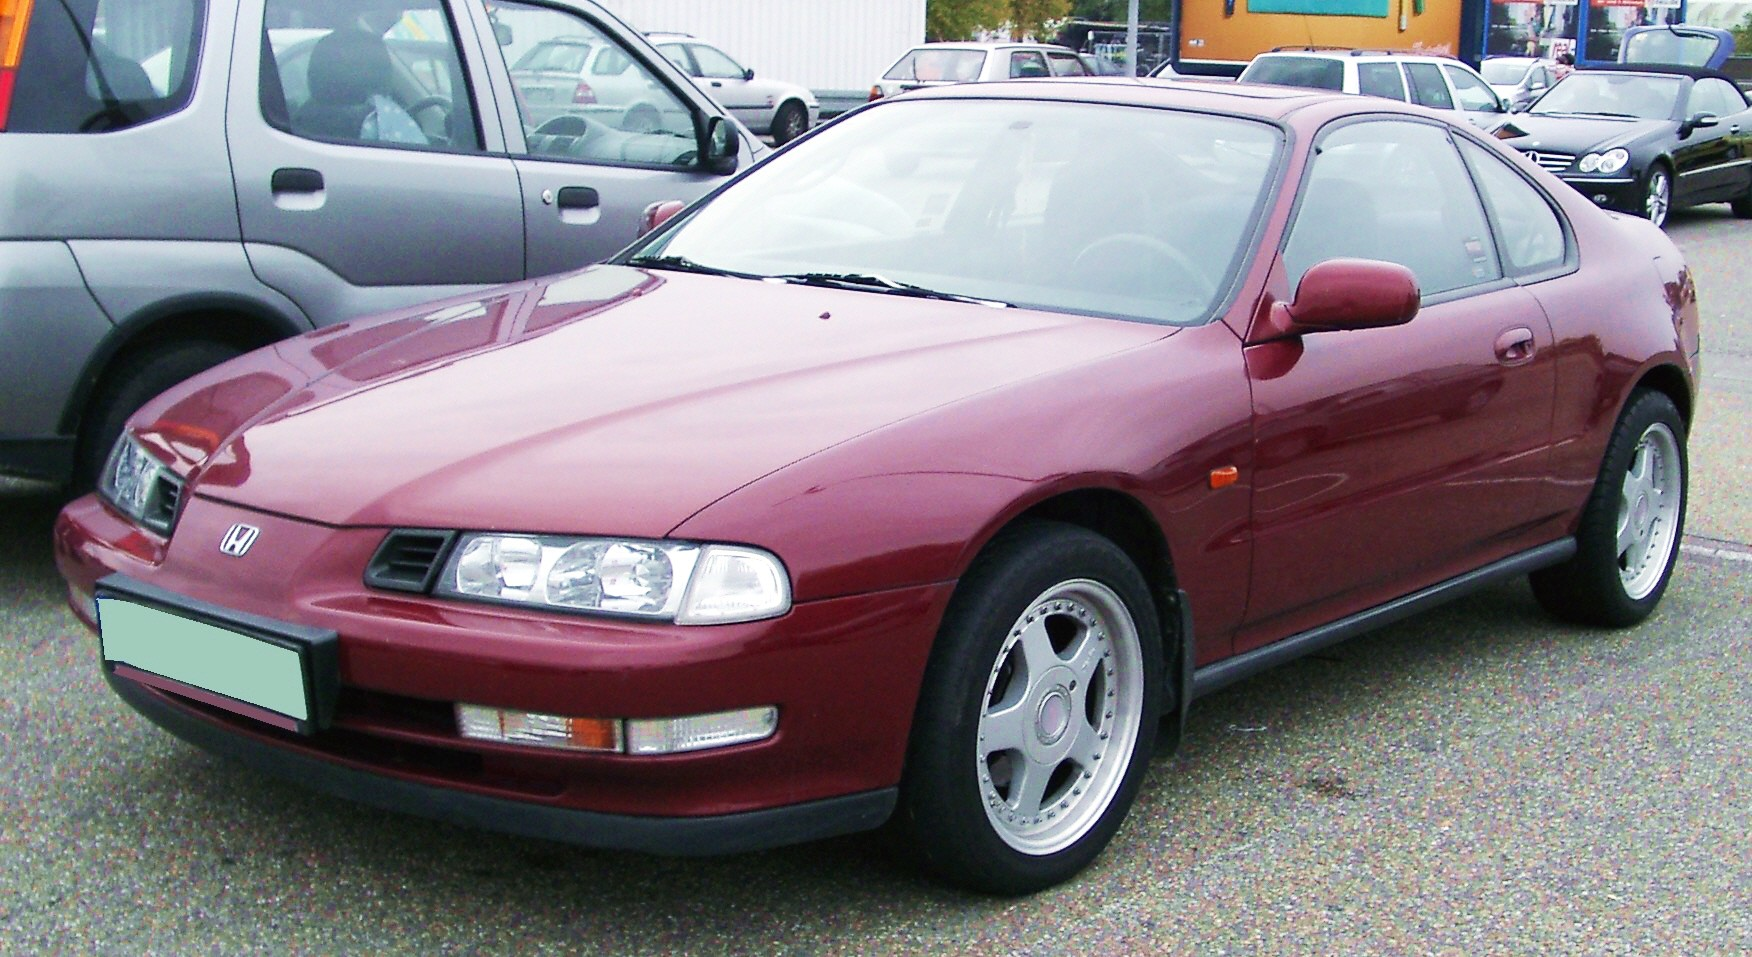 Honda Prelude Given A Sporty Facelift #17